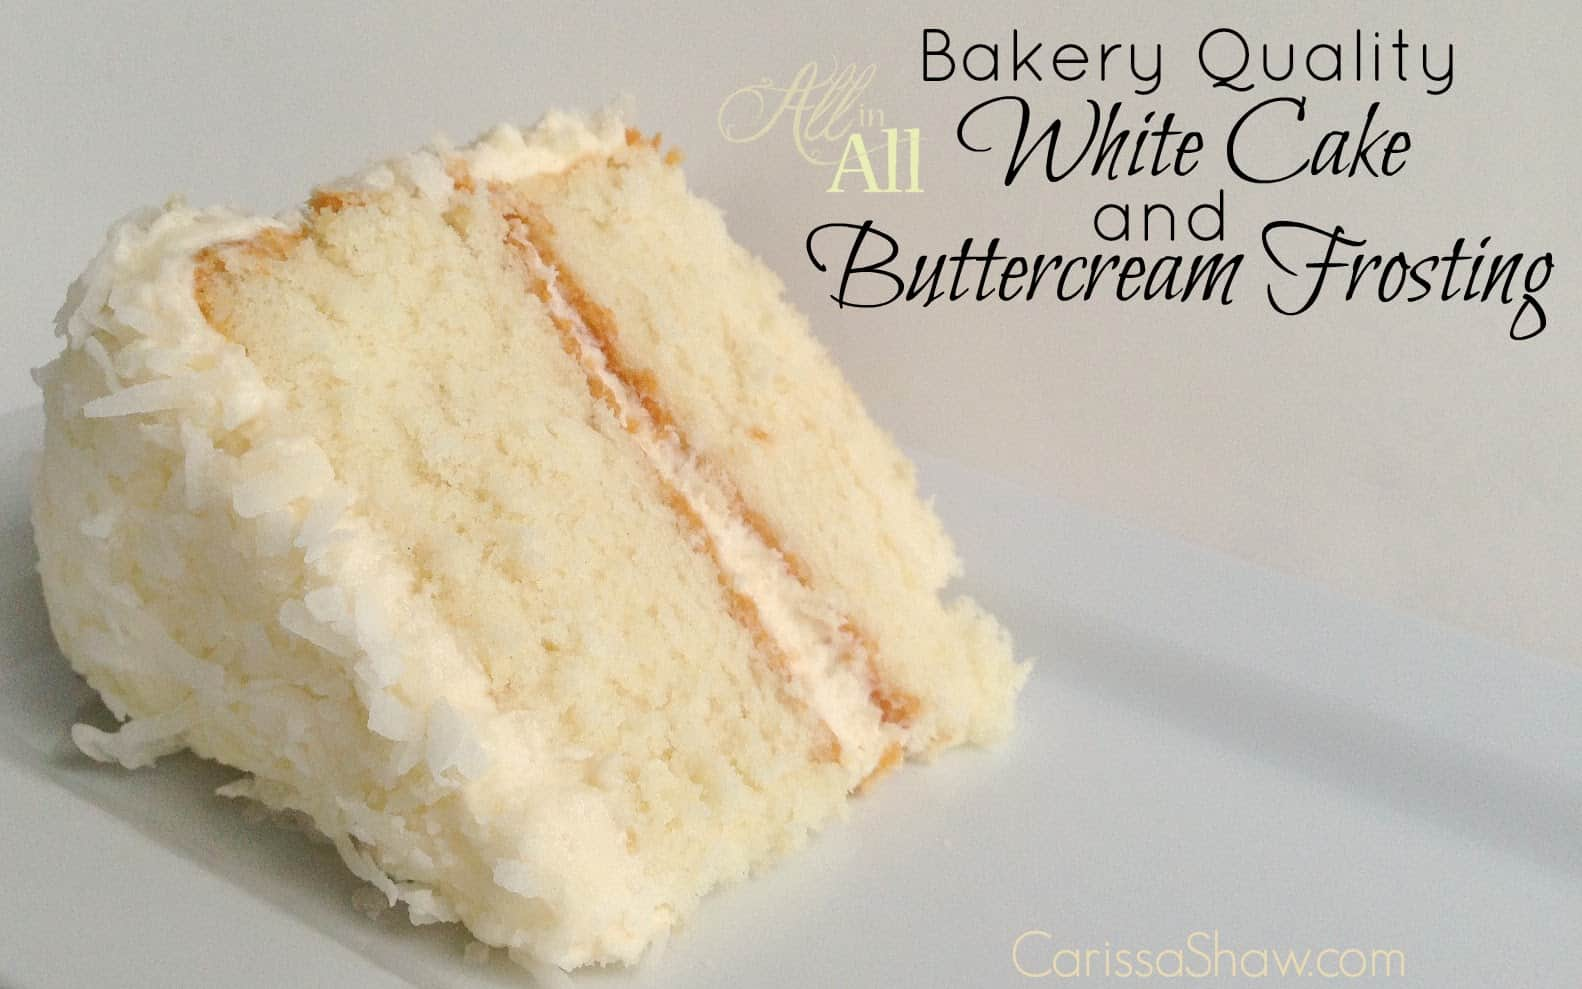 Making A Bakery Quality White Cake With Buttercream Frosting All In All